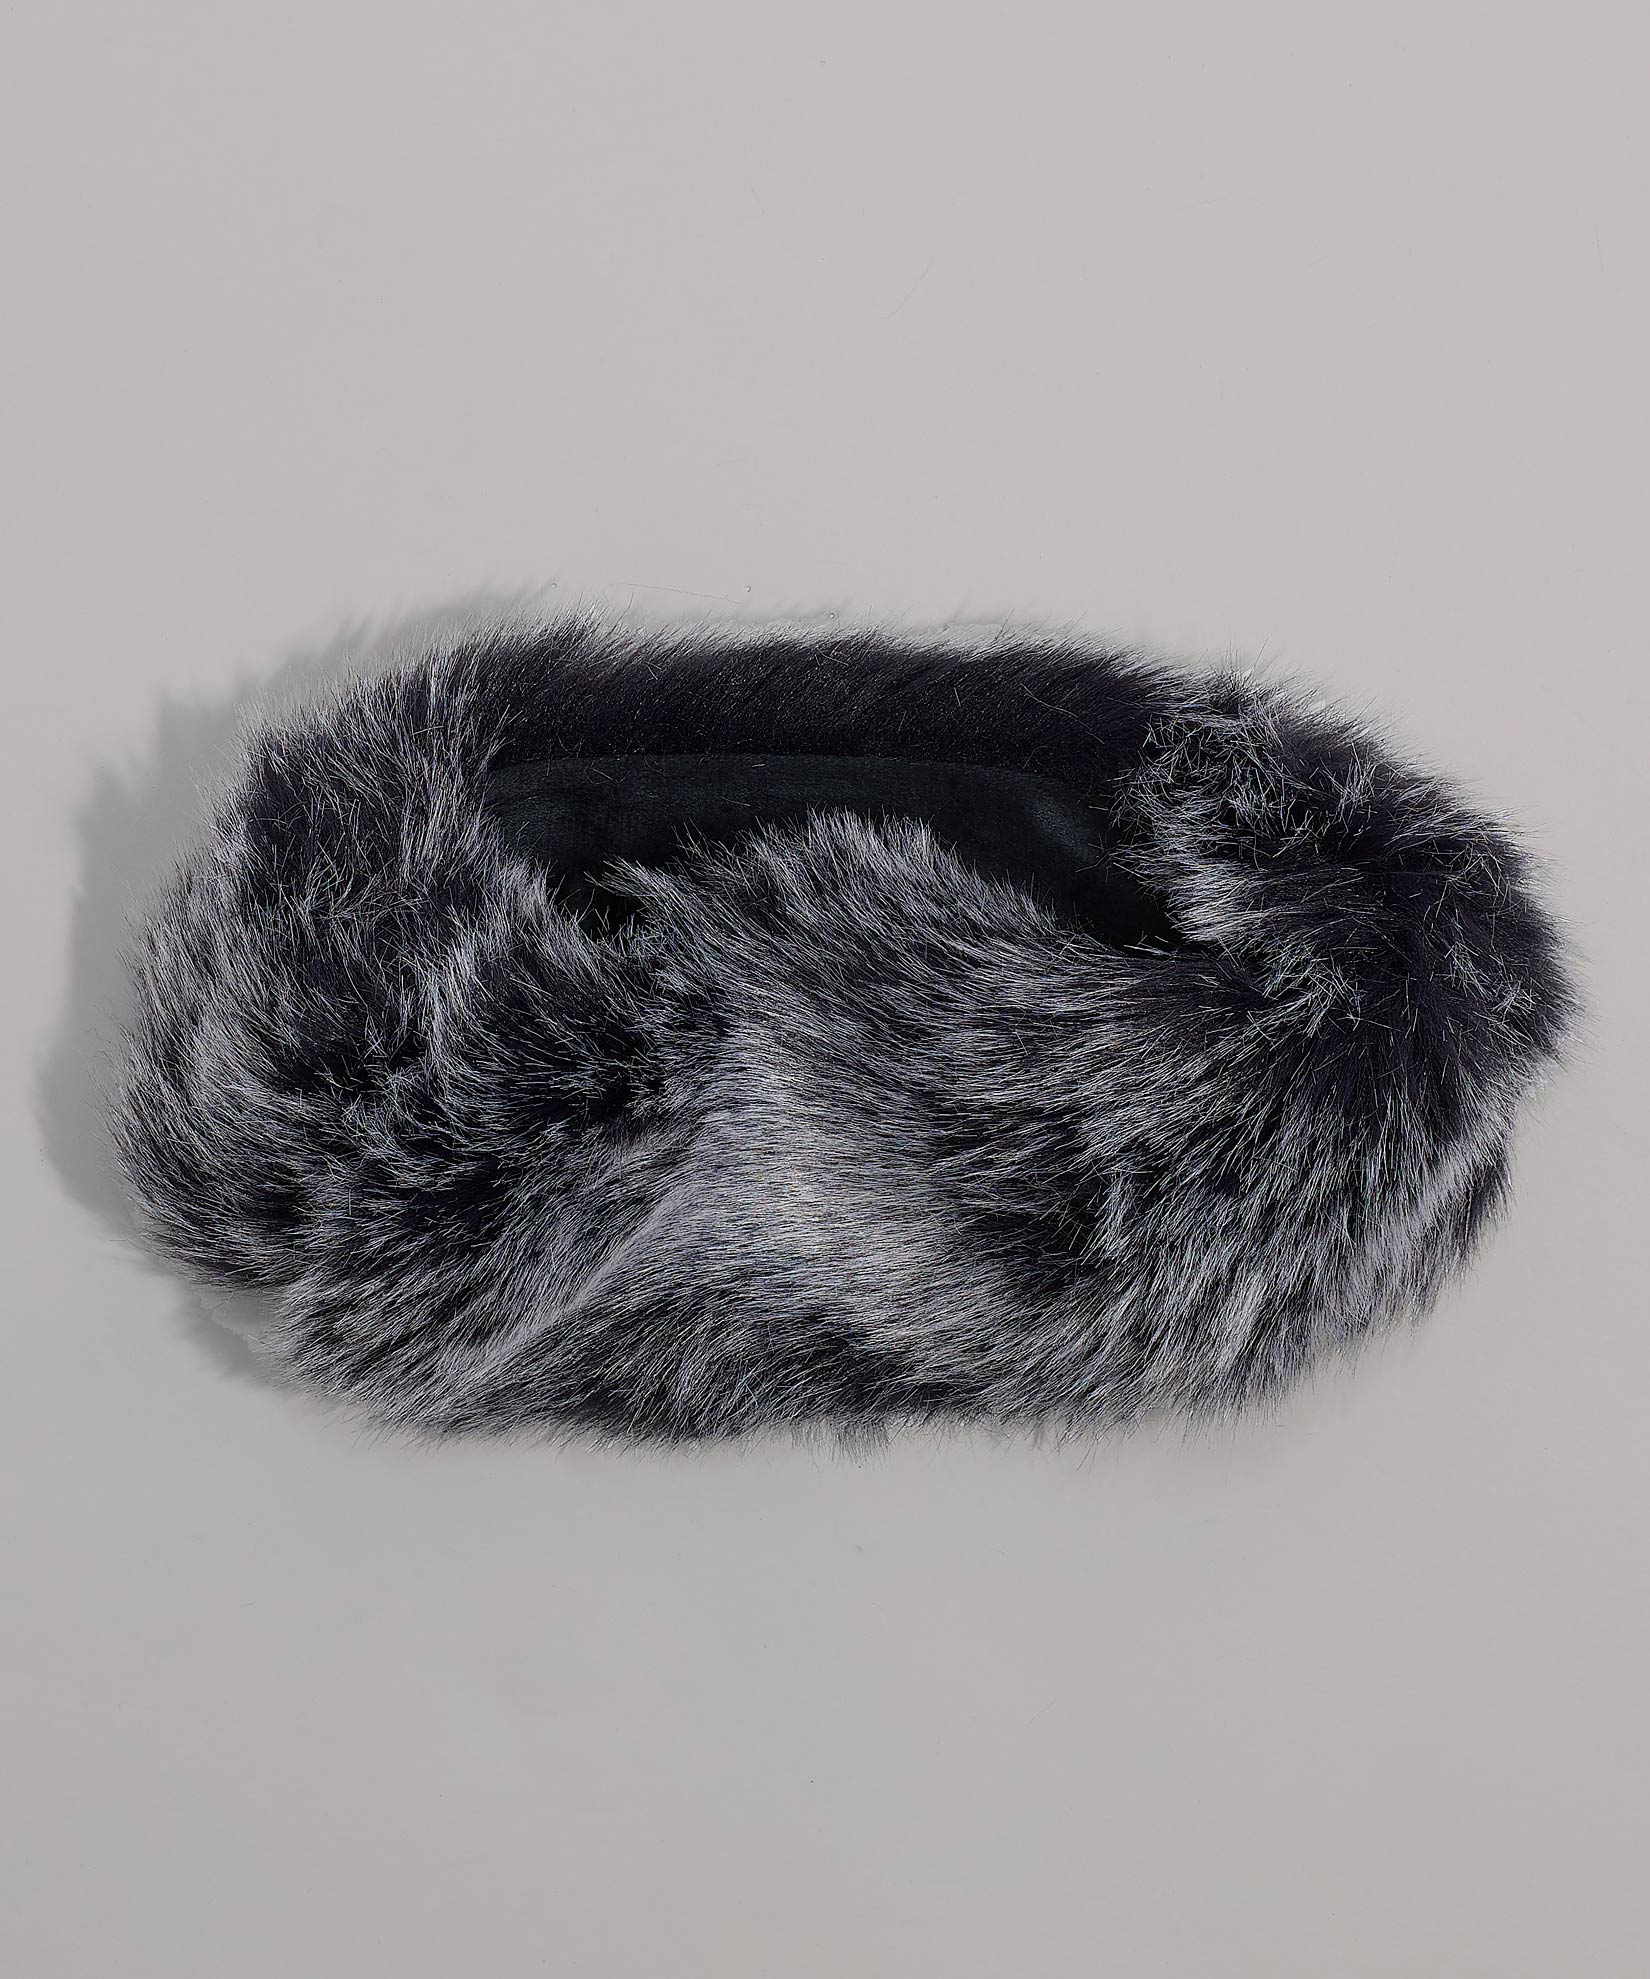 Echo Black - Multi Use Faux Fur Neck Ring Headband